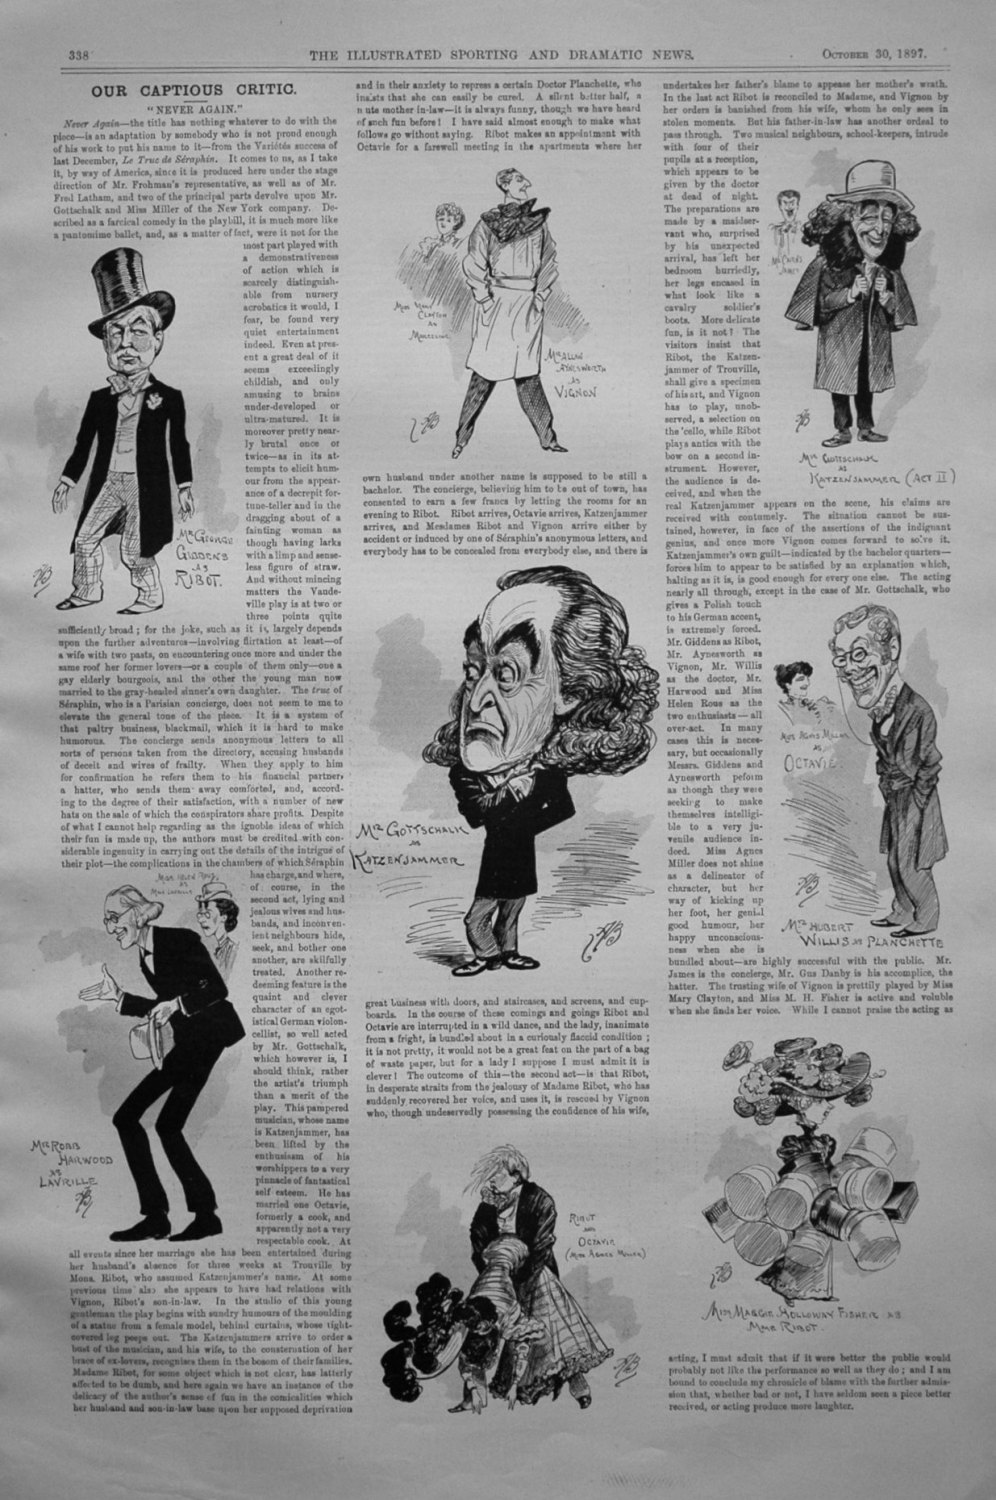 Our Captious Critic, October 30th 1897.